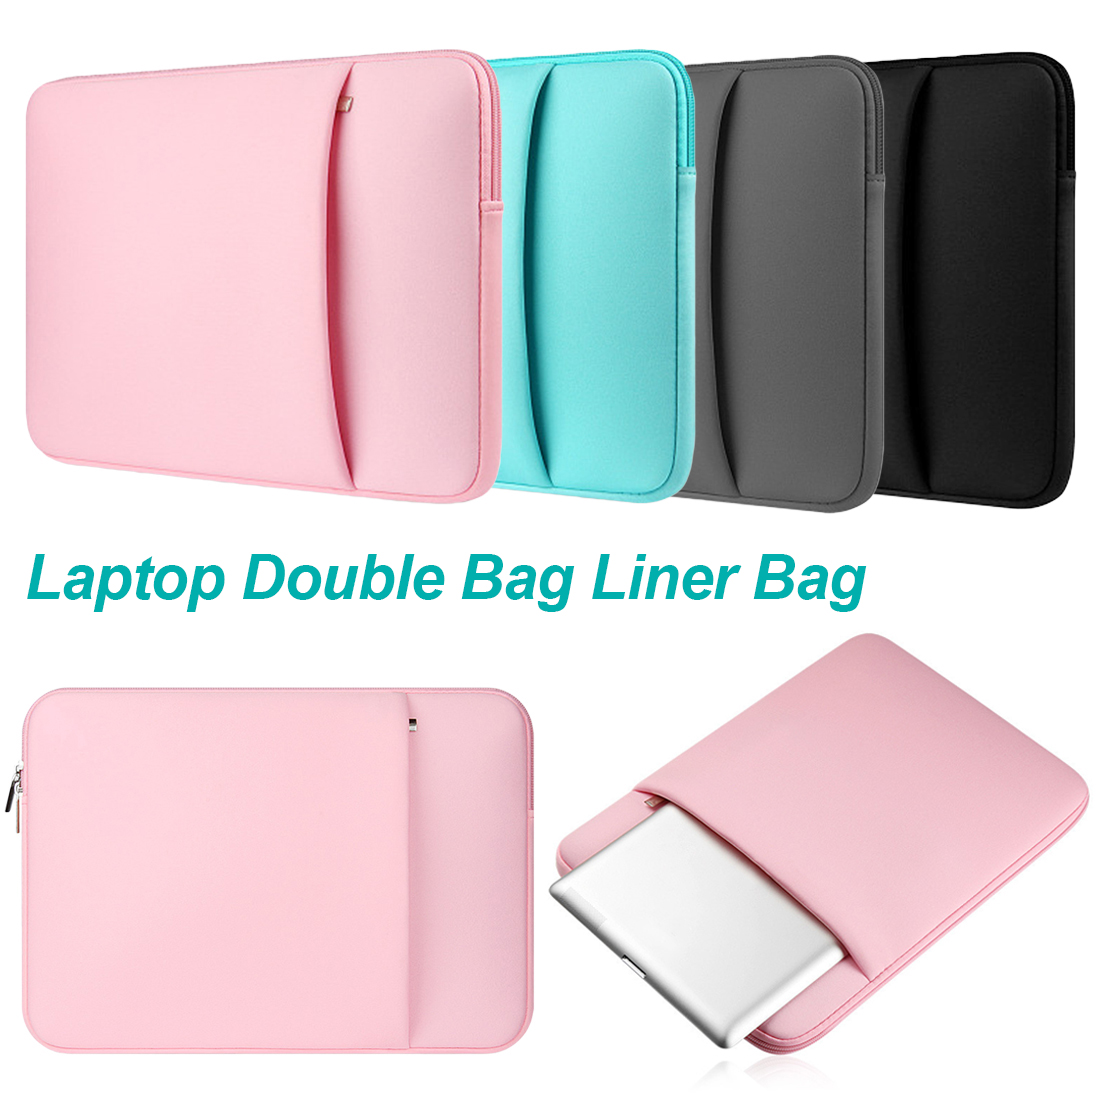 Fashion Nylon Laptop Sleeve For MacBook Air Pro 13 Pro 11 12 15 15.6 Computer Bag 14 Inch Portable Liner Sleeve Case 4 Colors